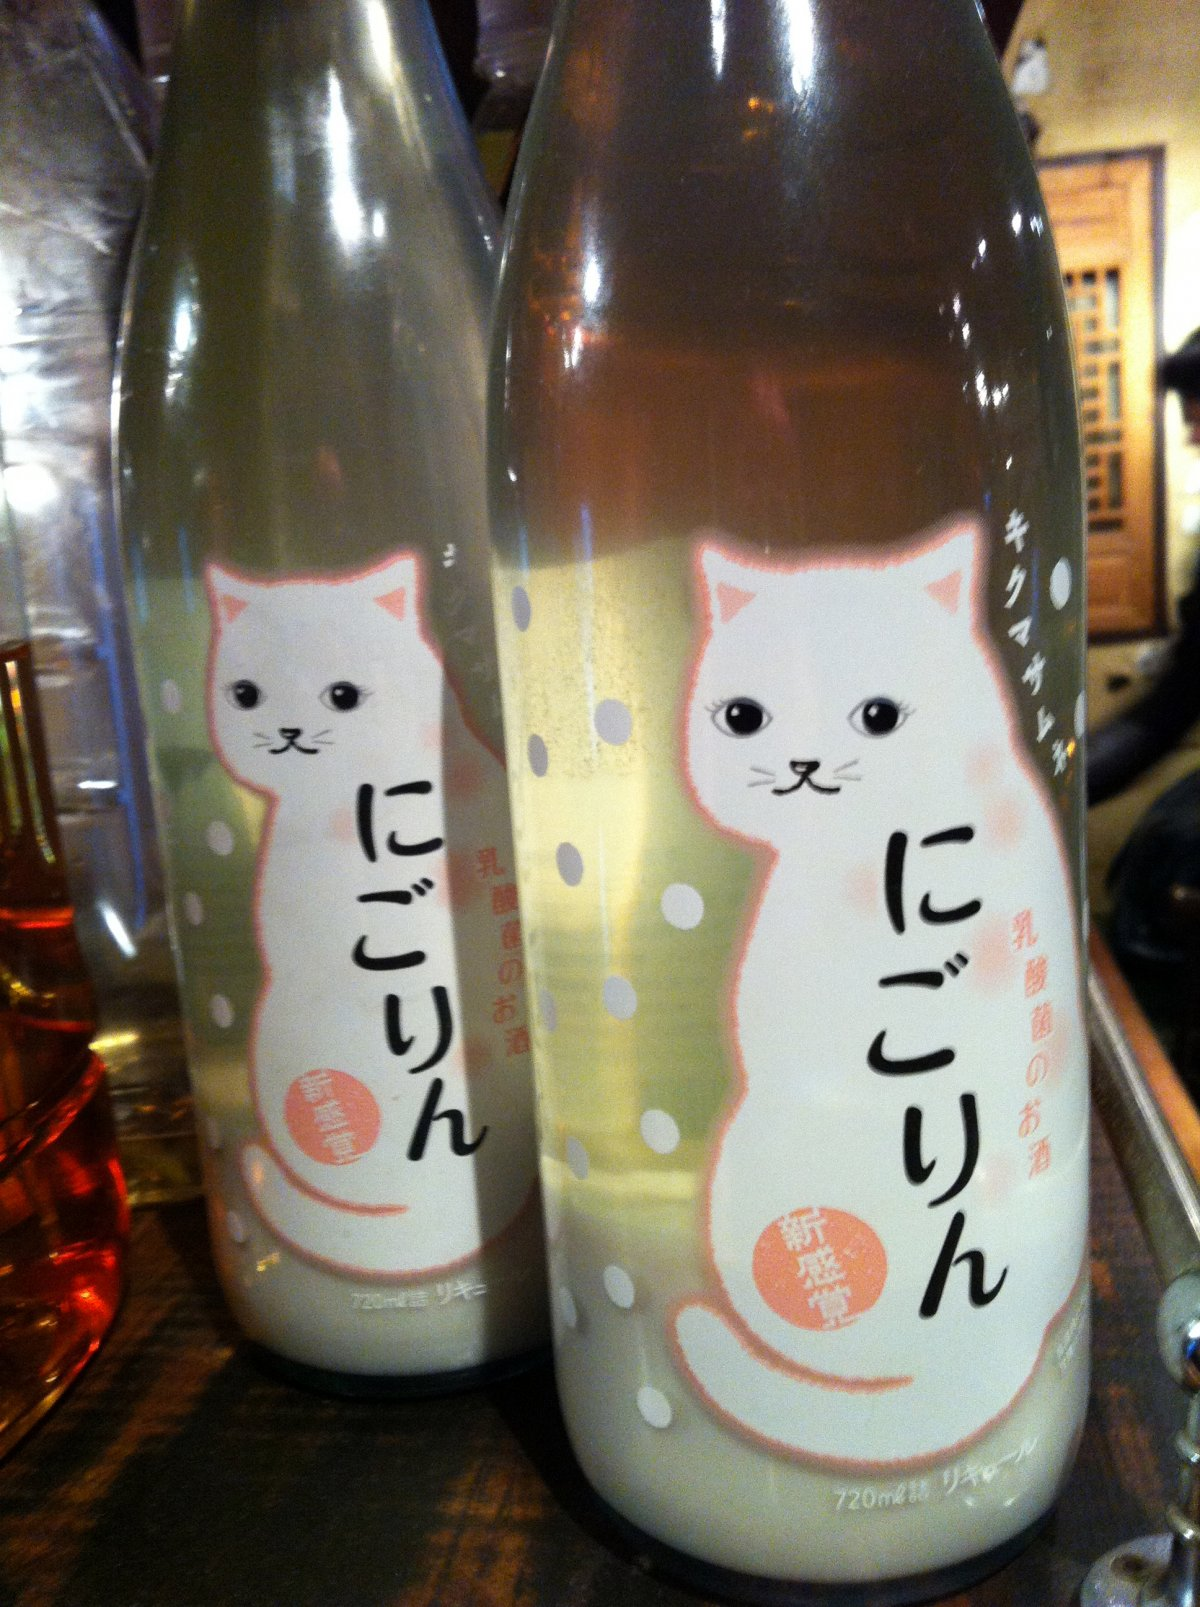 Don't worry, this milky sake isn't made with fur.